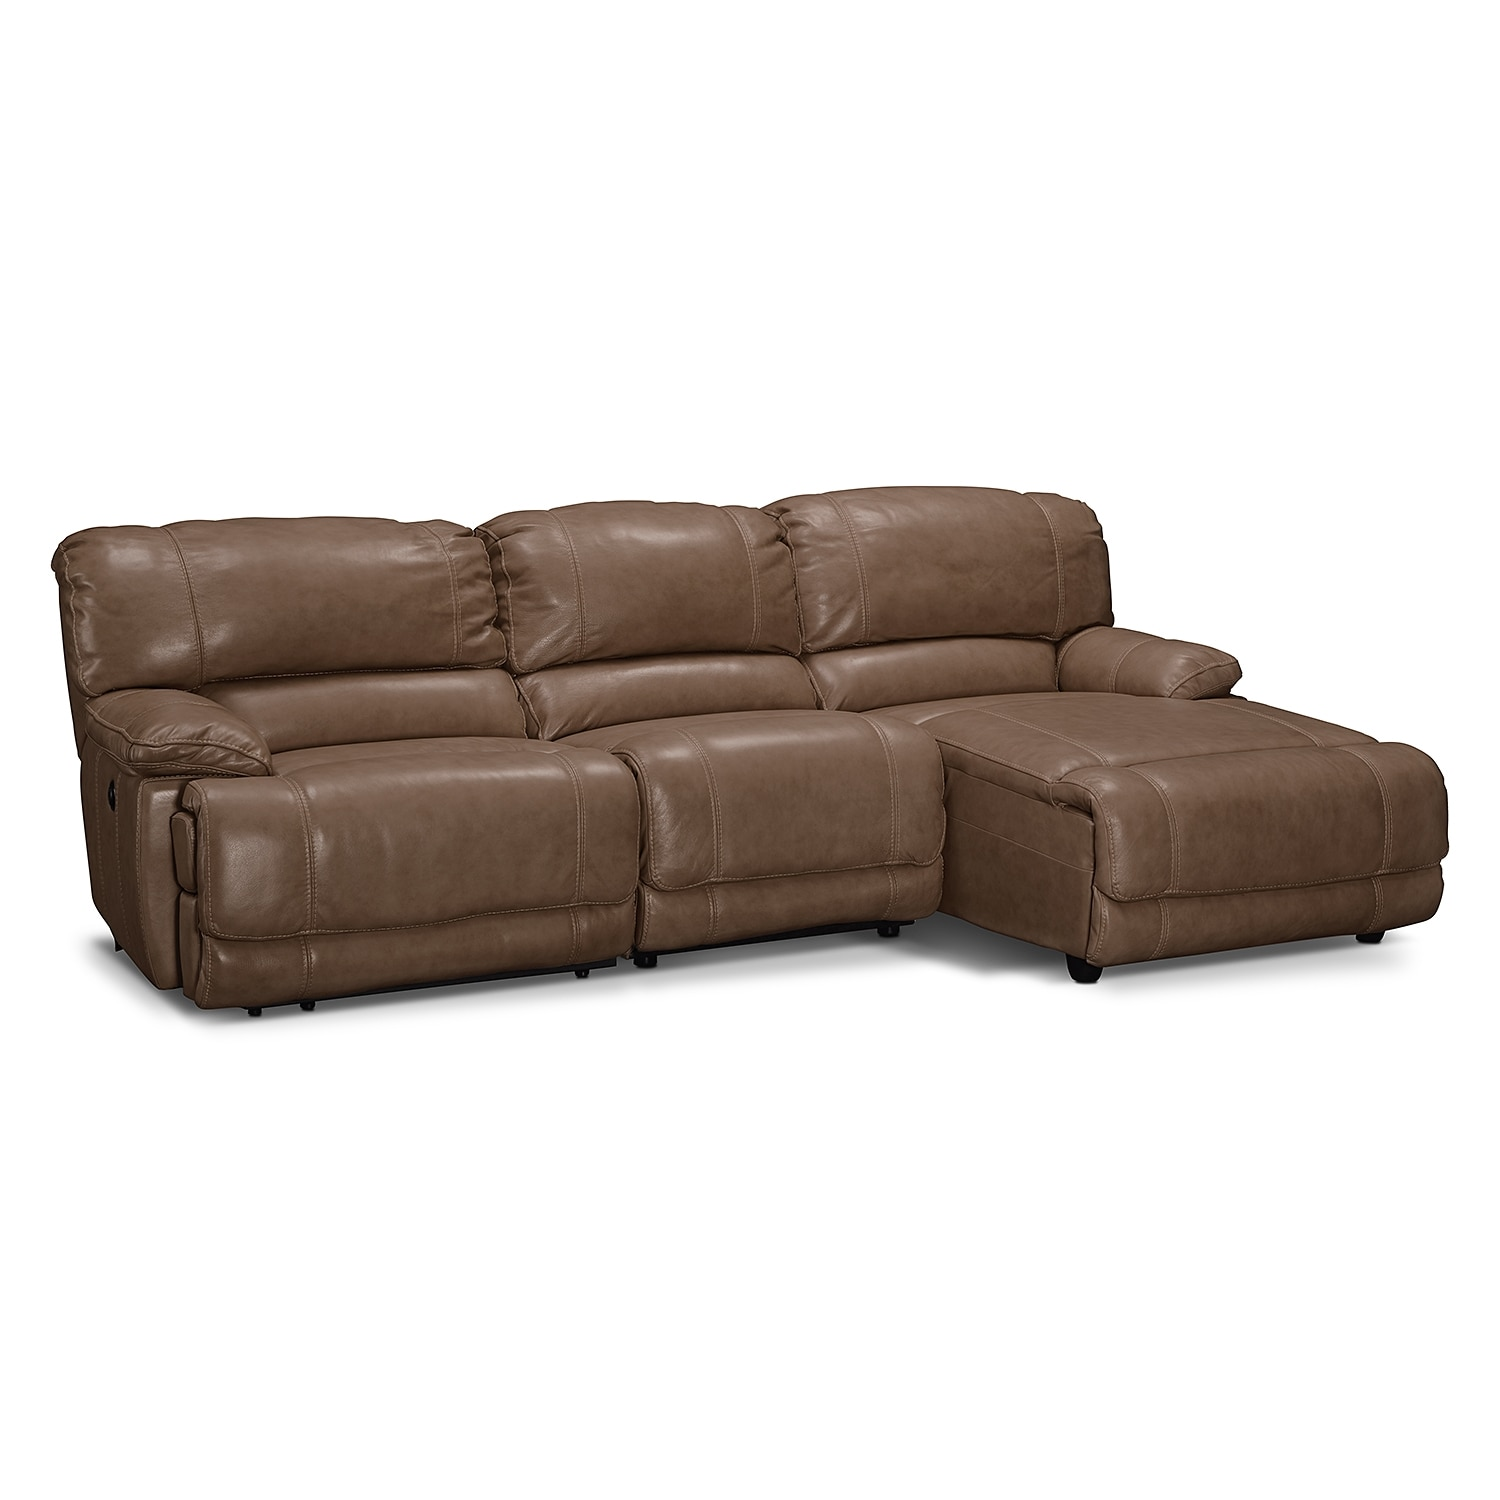 3 Piece Sectional Sofa With Chaise Of St Malo 3 Piece Power Reclining Sectional With Right